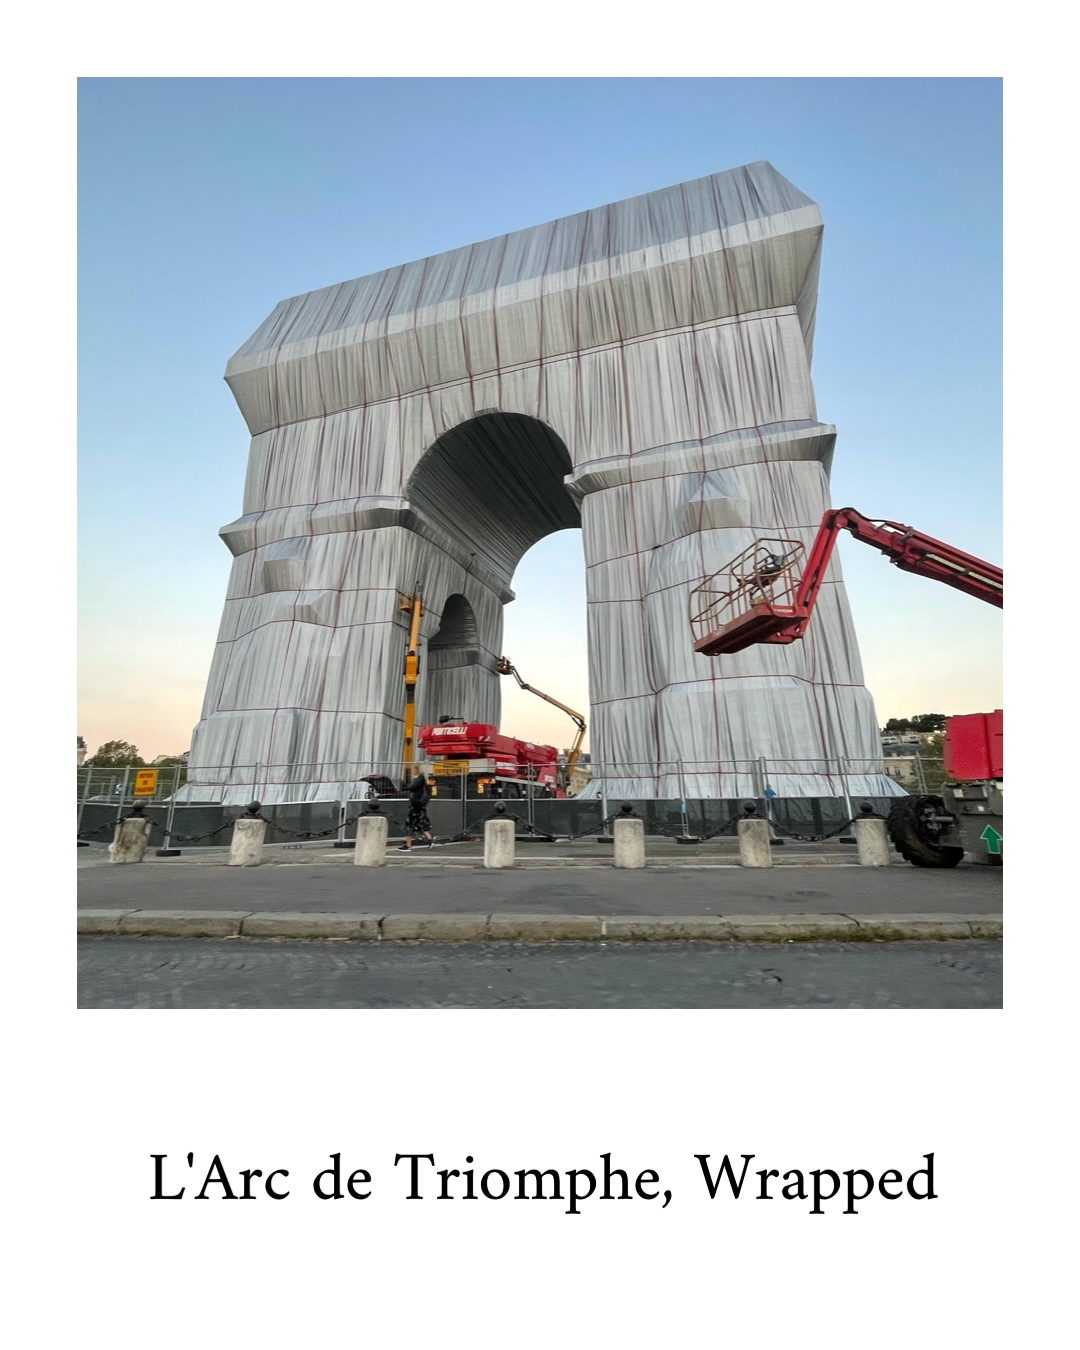 """""""L'Arc de Triomphe, Wrapped"""" 60 years in the making is now concretized"""